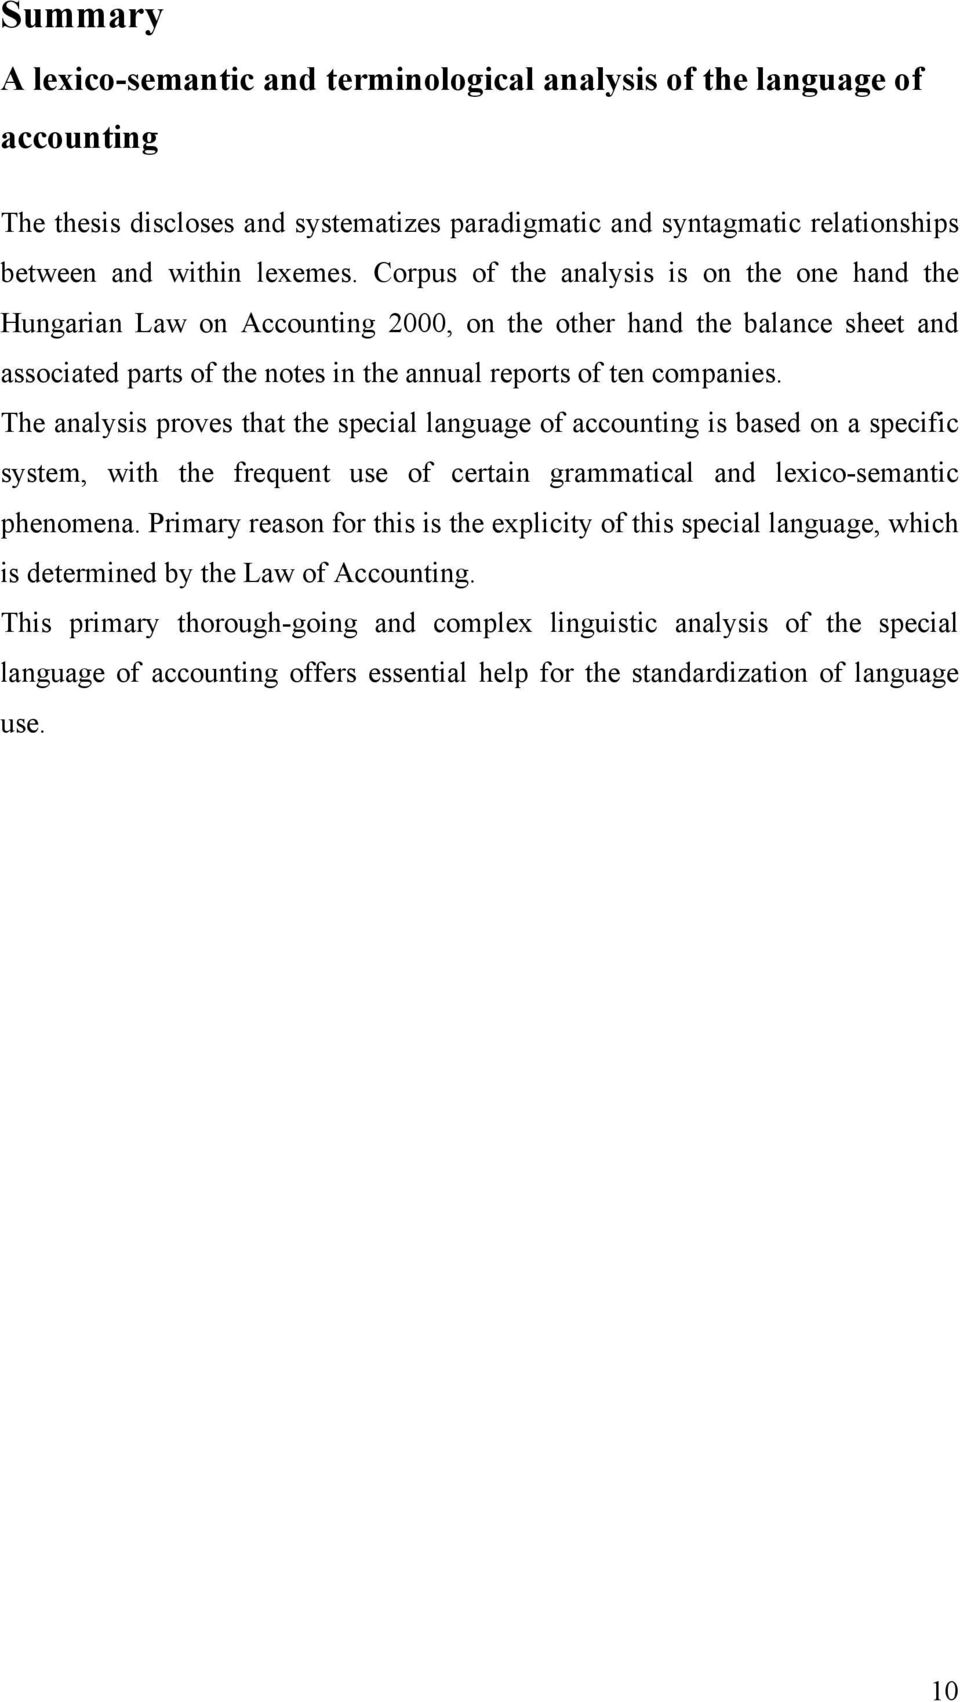 The analysis proves that the special language of accounting is based on a specific system, with the frequent use of certain grammatical and lexico-semantic phenomena.